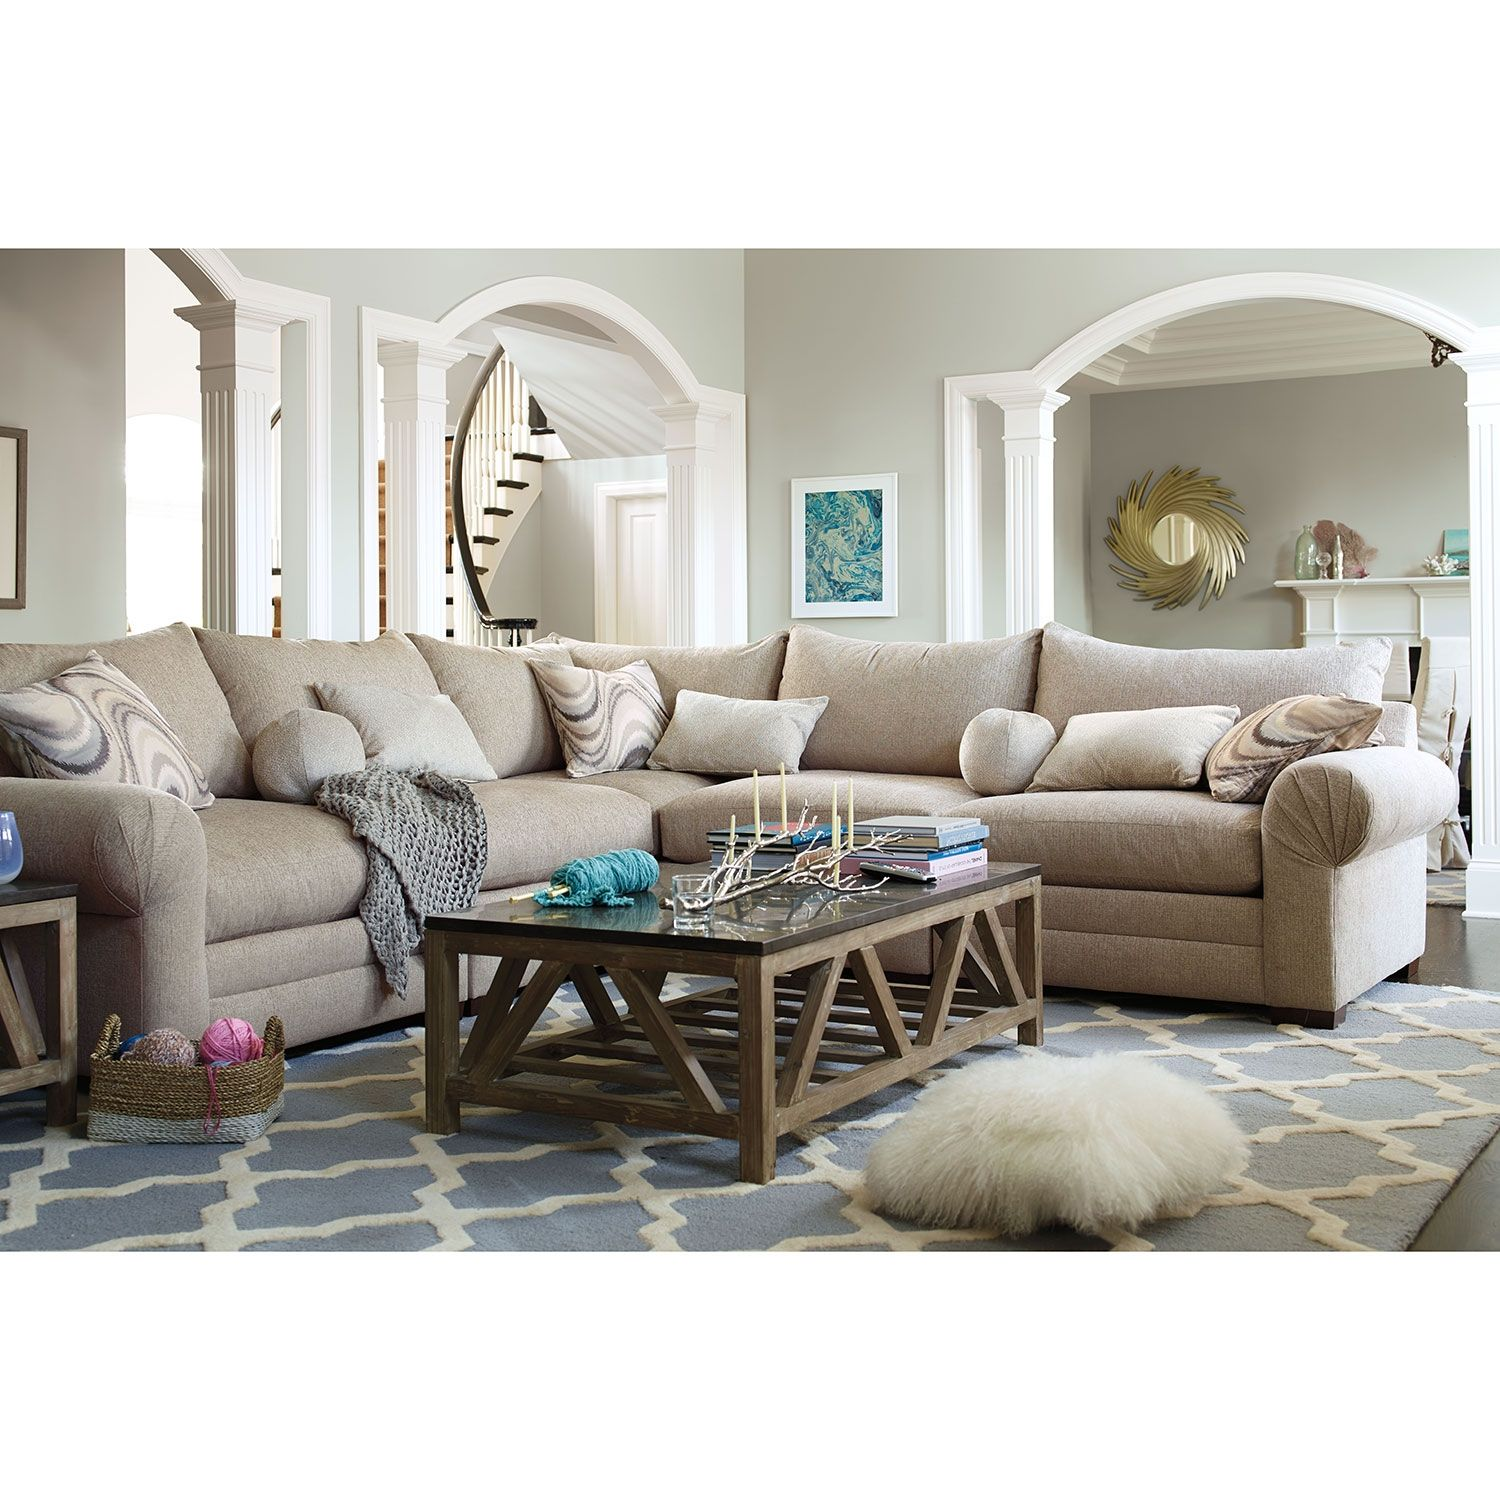 Wilshire 5 Pc Sectional Alternate American Signature